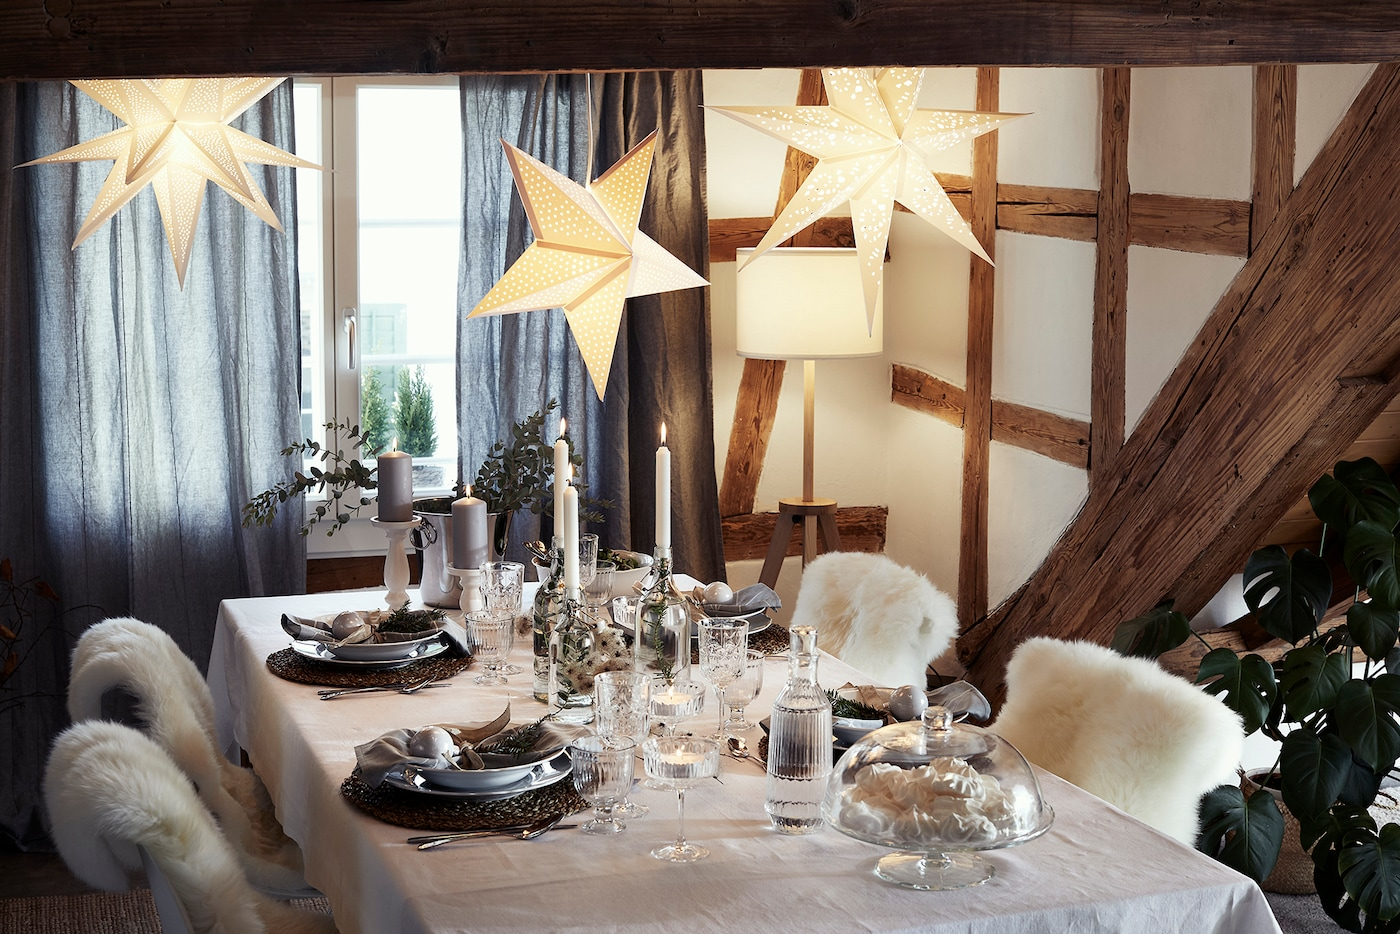 A Nordic winter inspired table decoration, with rustic placemats, candles, and sheepskin.